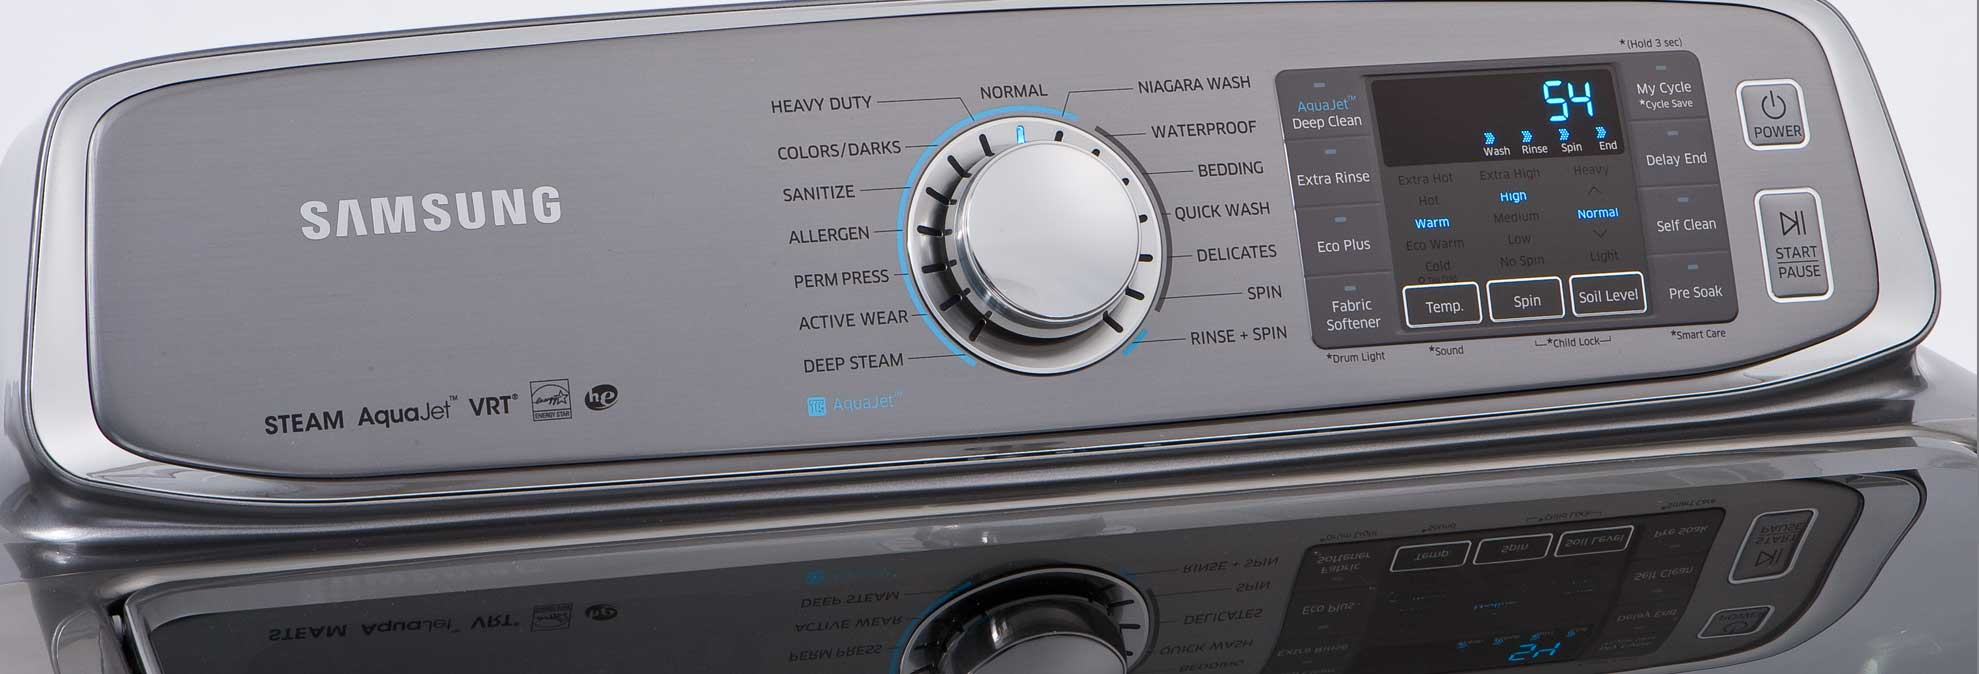 Reports Of Samsung Washers Exploding Prompts Company To Issue Safety Warning Consumer